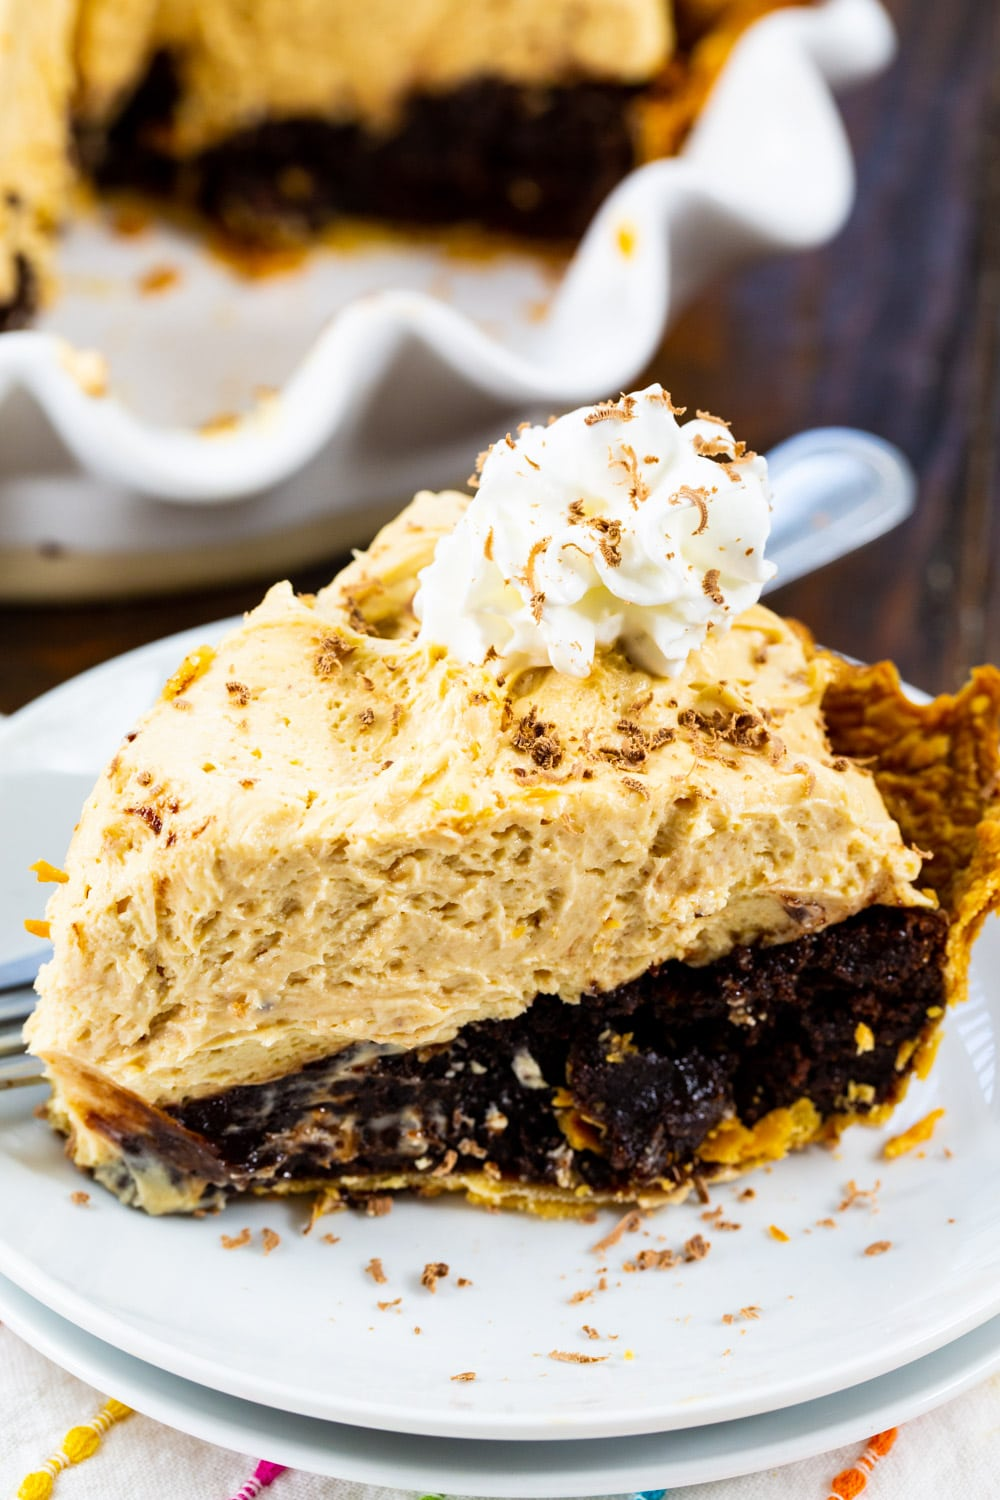 Peanut Butter Brownie Pie slice topped with whipped cream on plate.